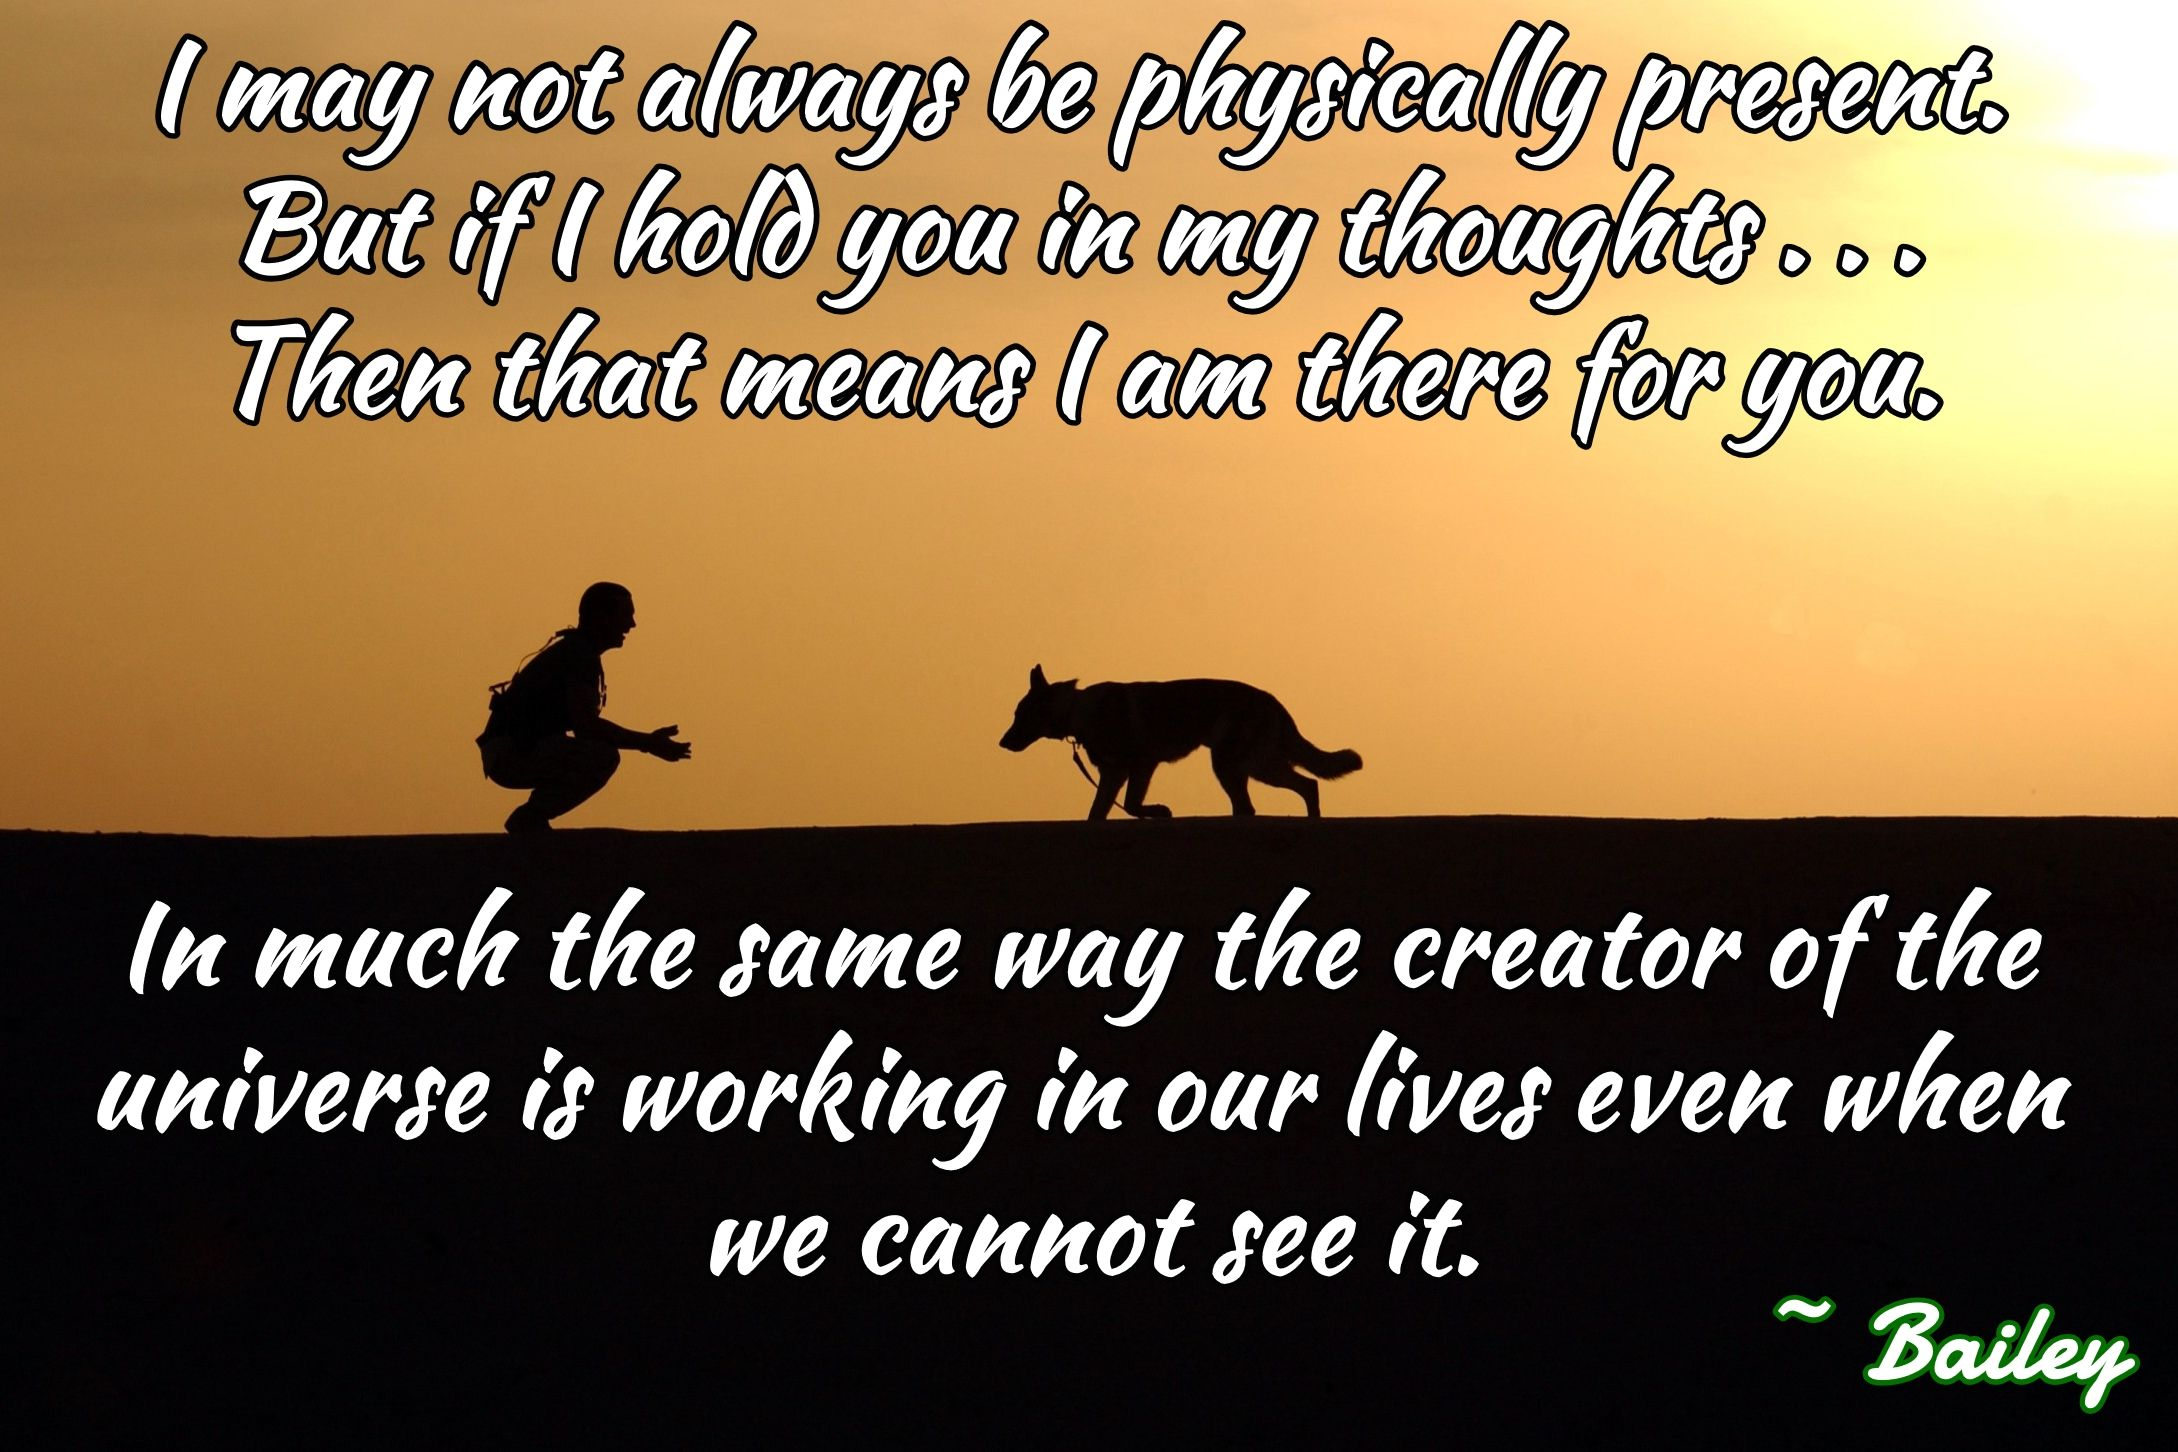 I may not always be physically present.  But if I hold you in my thoughts . . .  Then that means I am there for you.